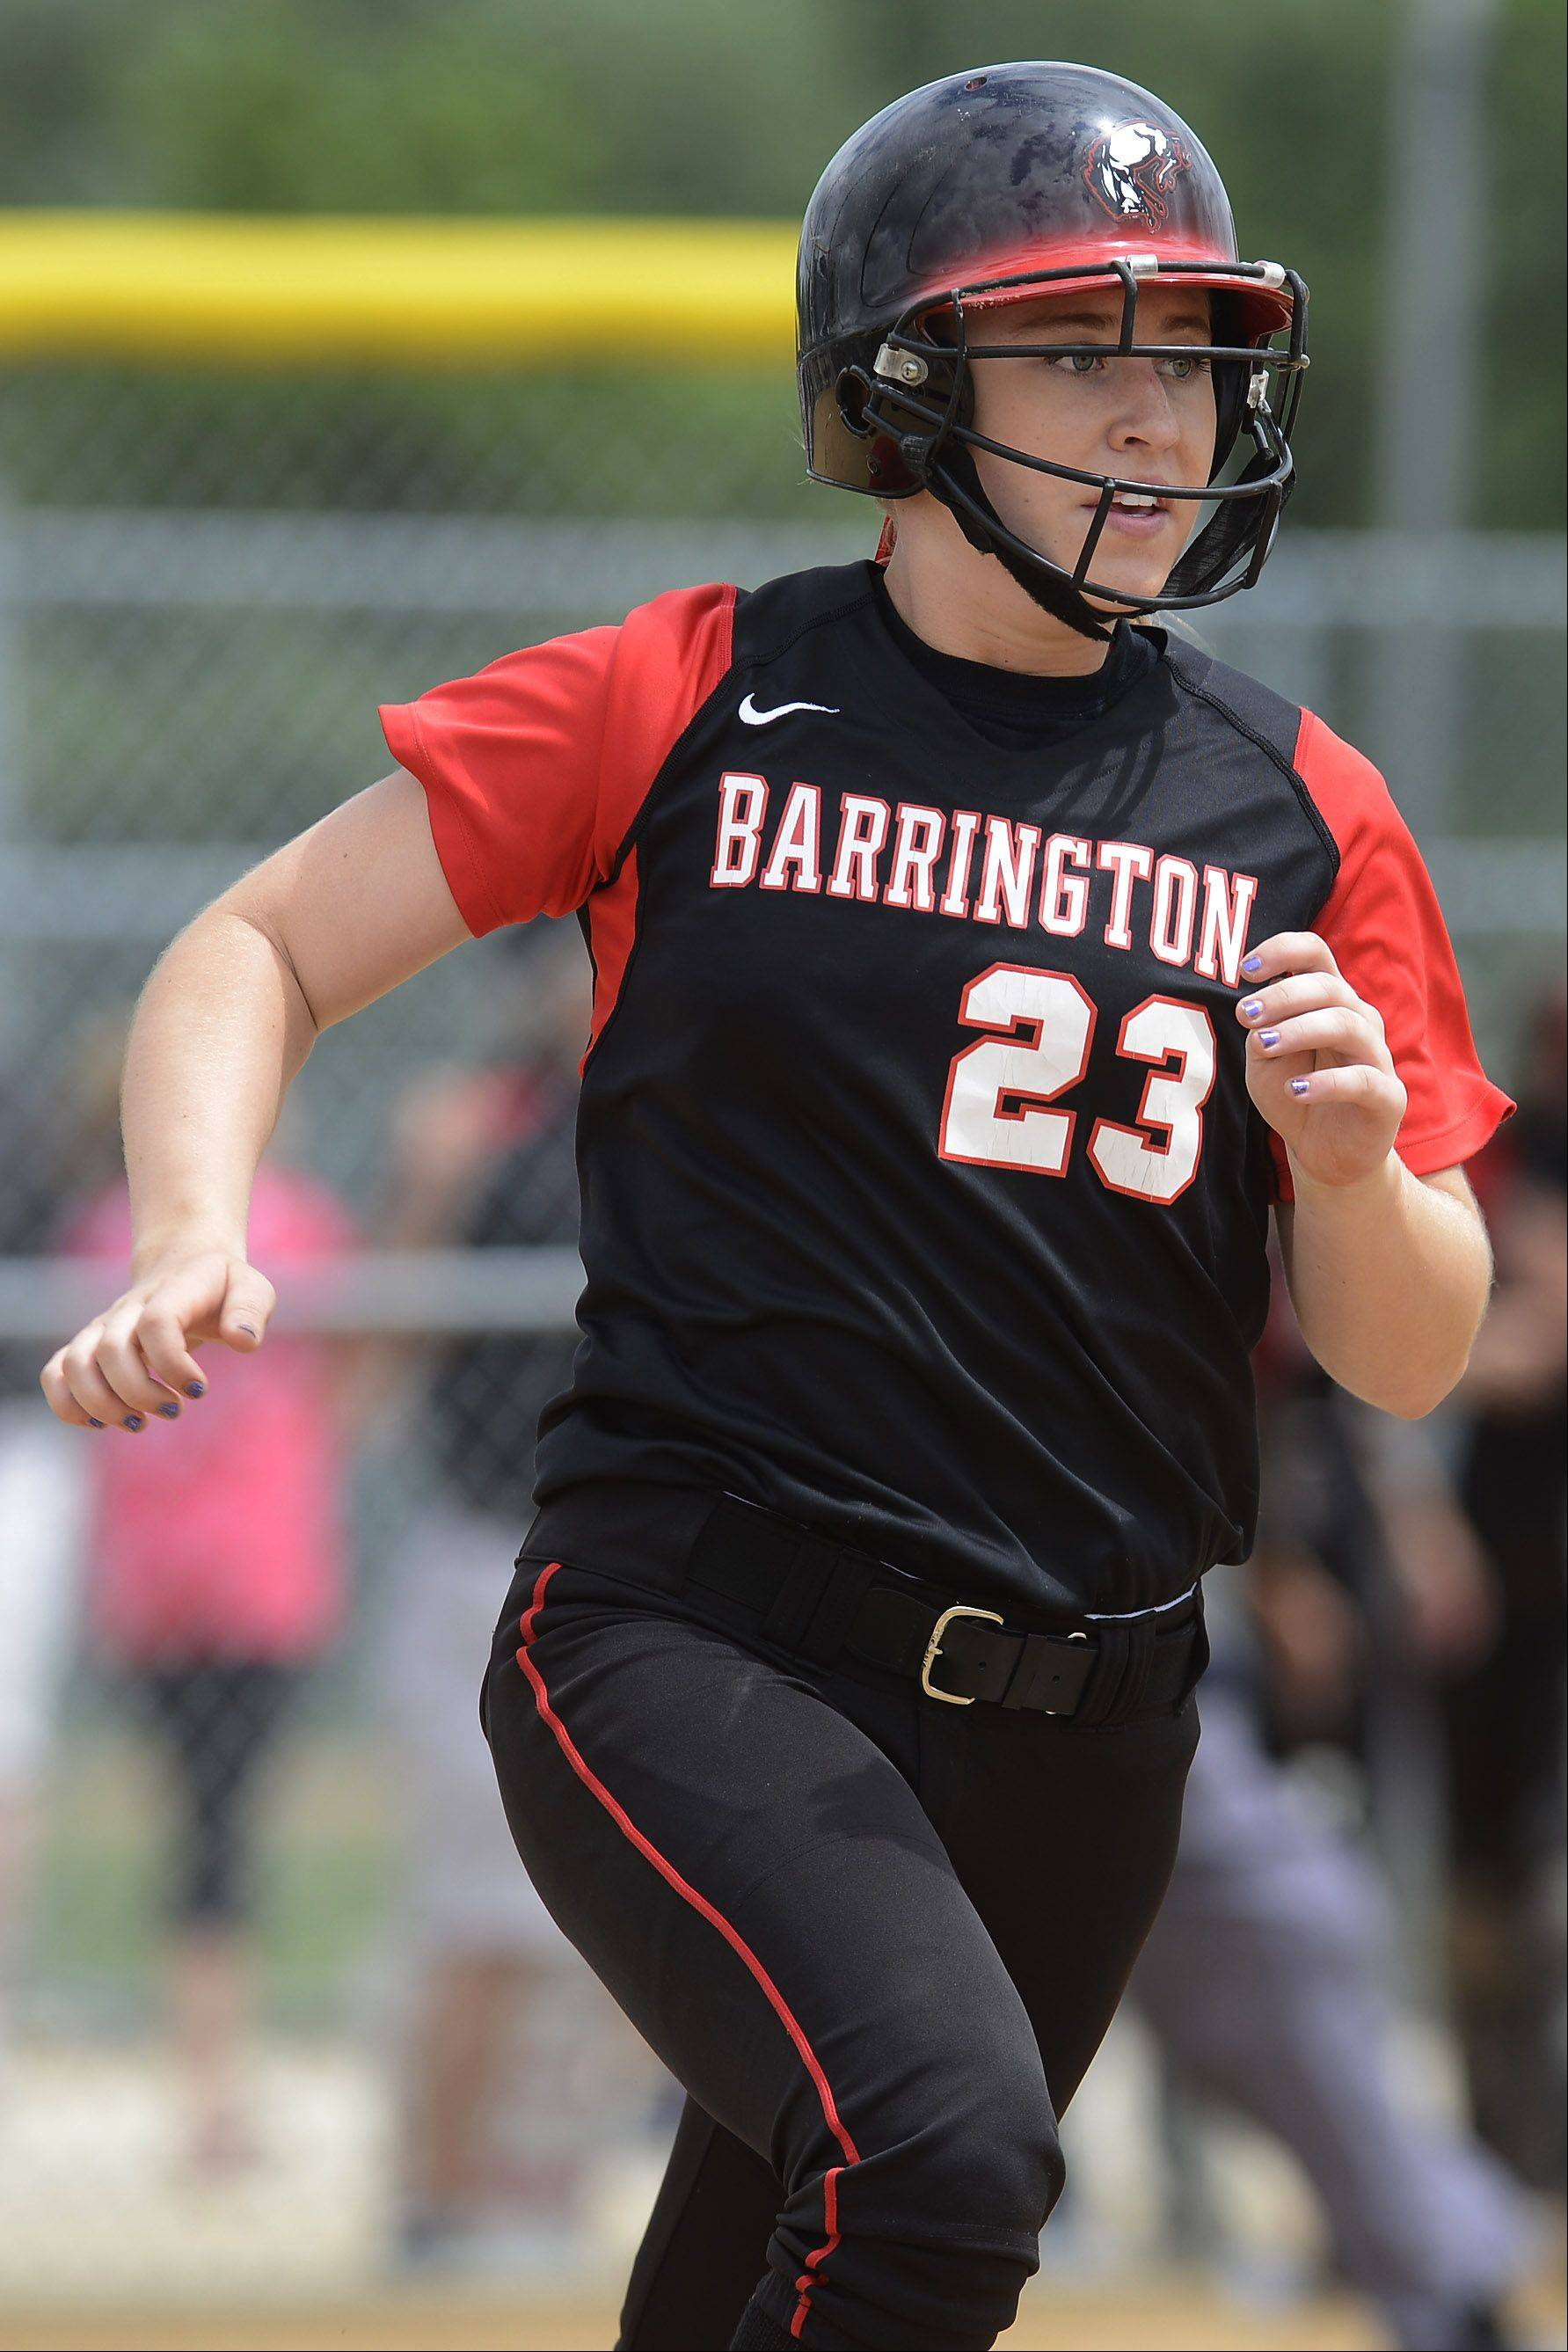 Barrington's Tess Bolger rounds first base after hitting a leadoff homer against New Trier in Rolling Meadows sectional final play.